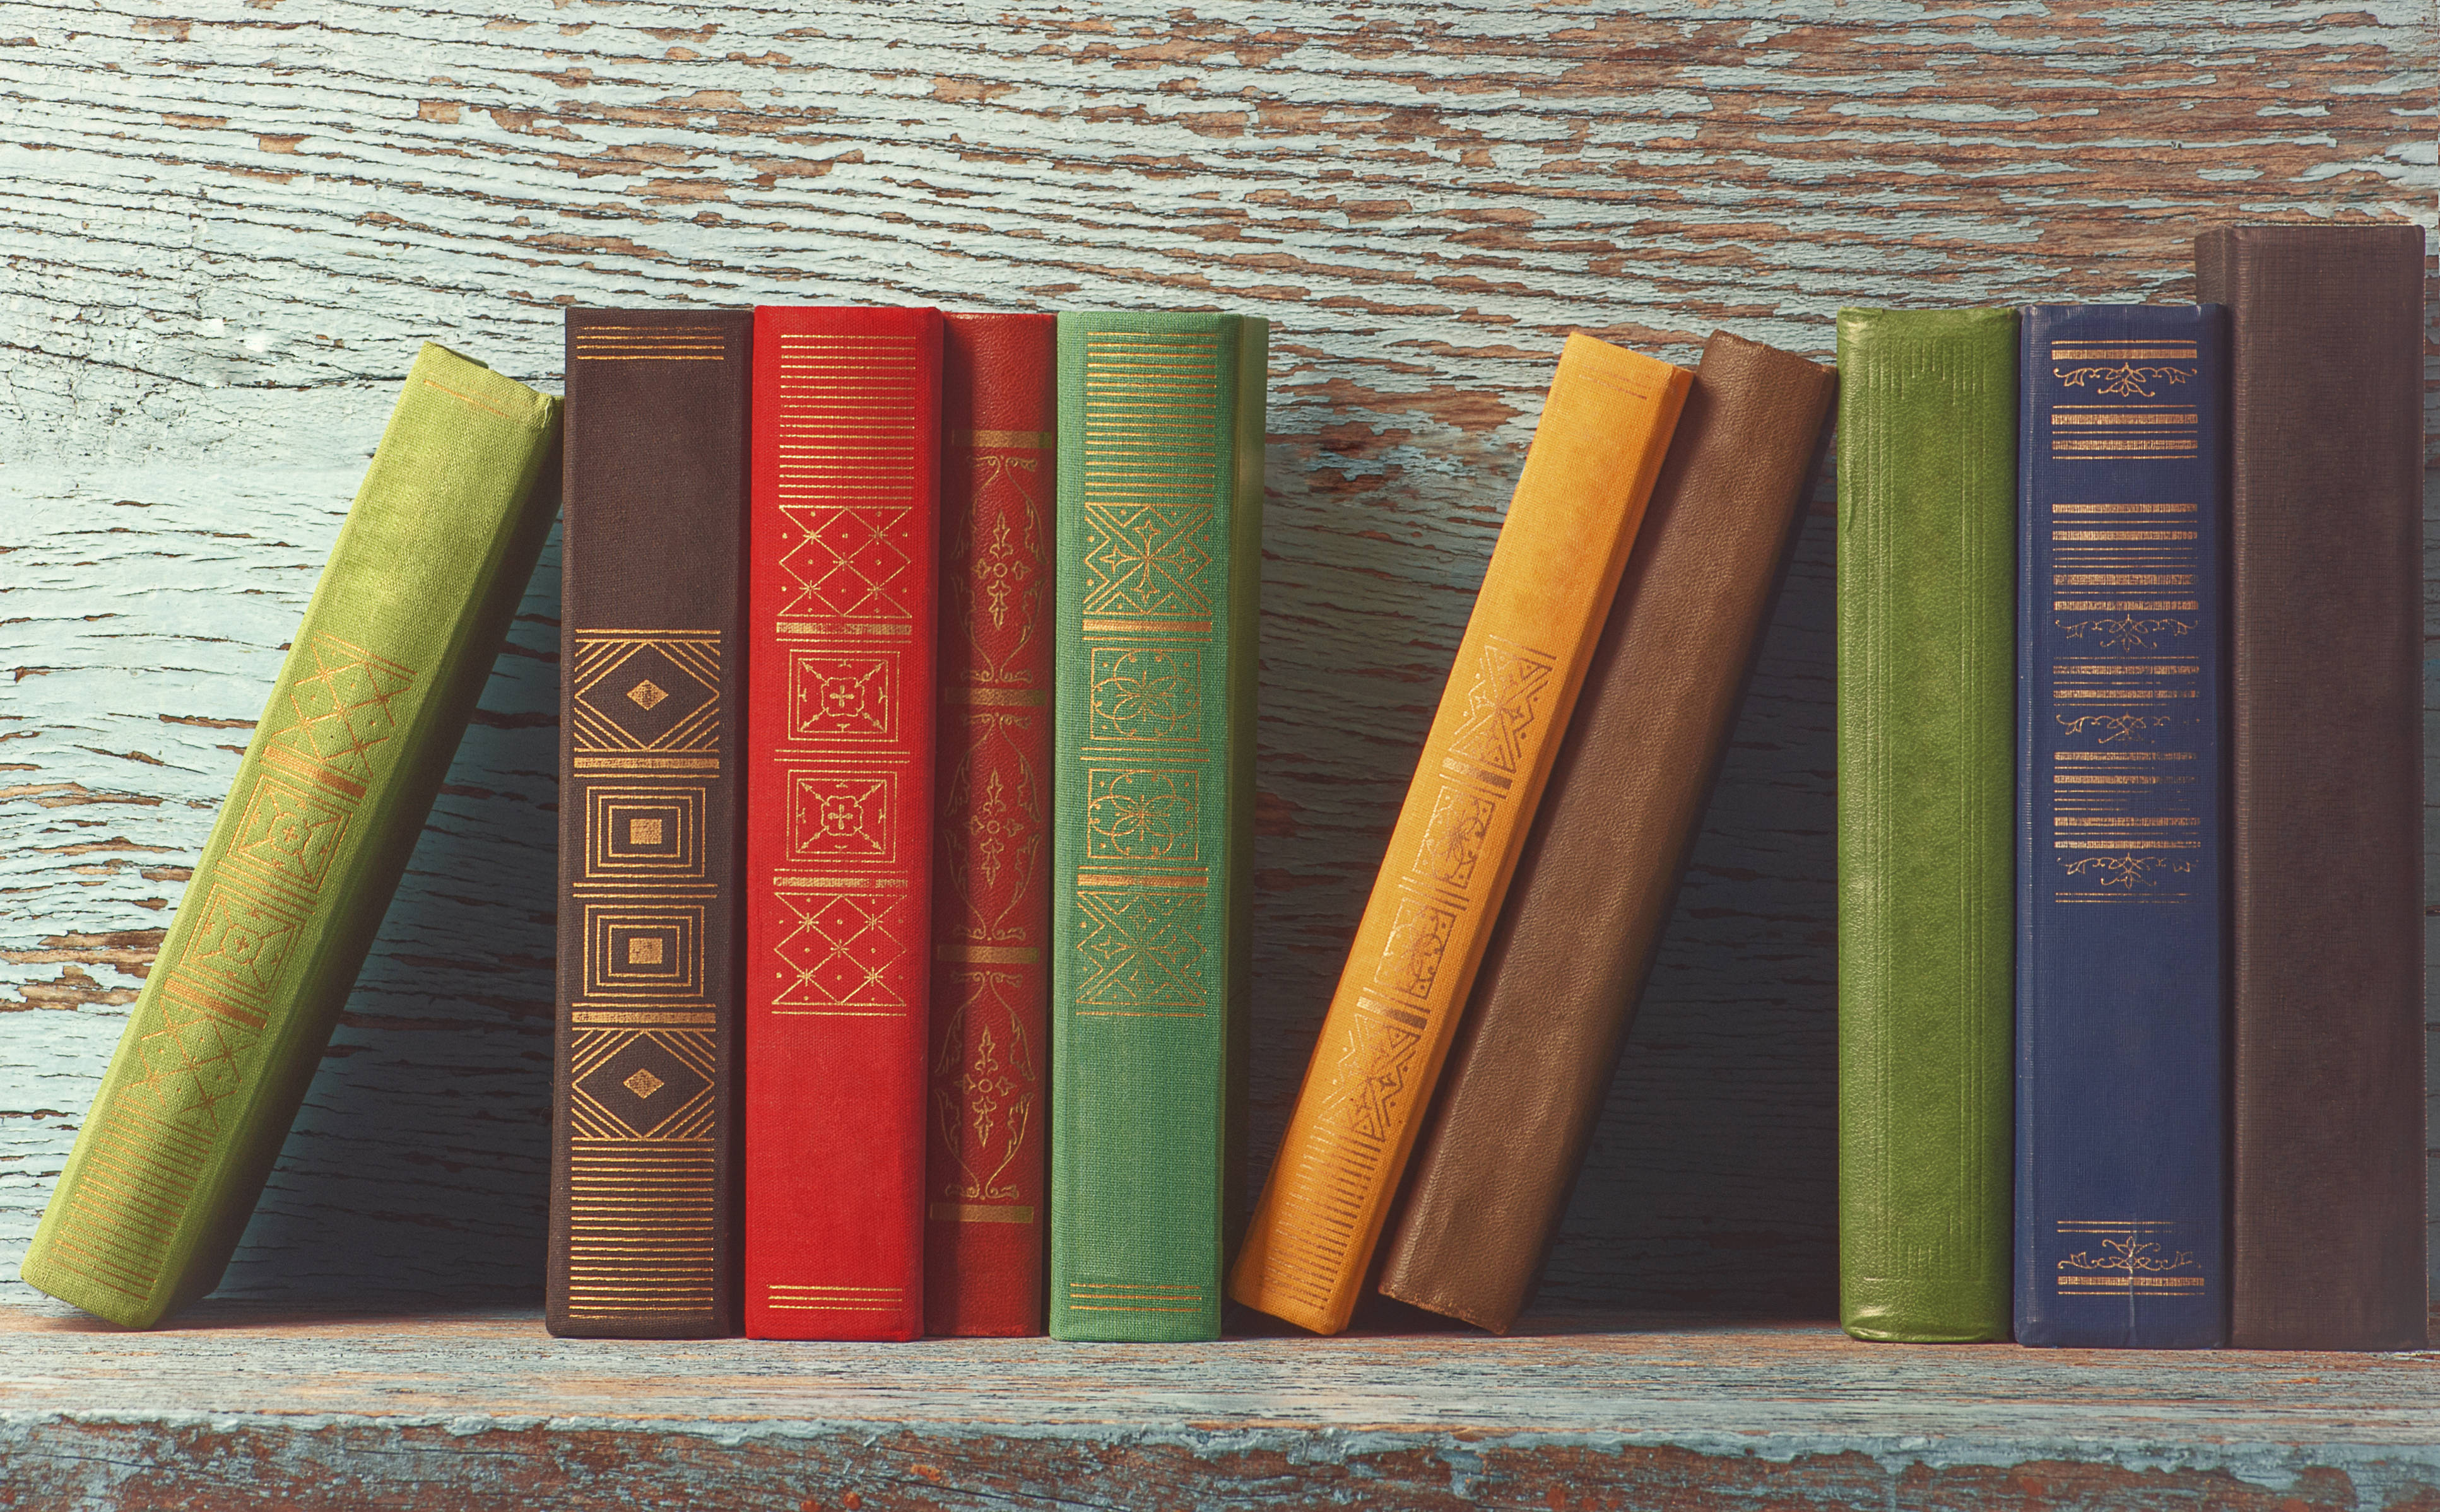 Friends of the Library of the Chathams to Hold One Day Book Collection on Saturday, Sept. 8